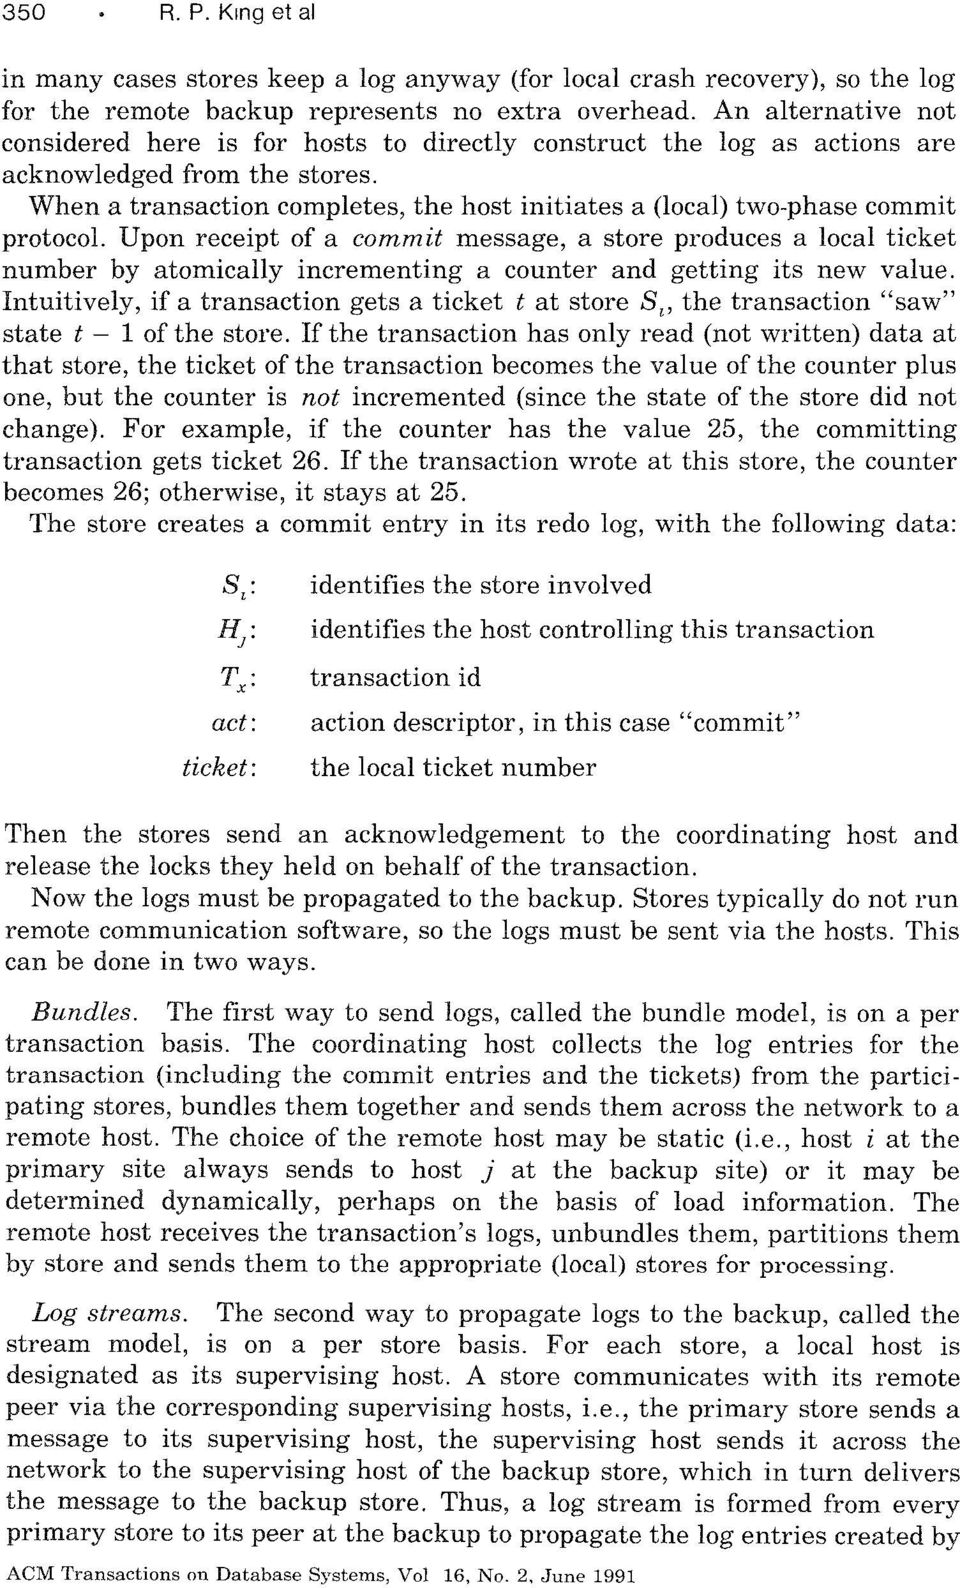 When a transaction completes, the host initiates a (local) two-phase commit protocol.